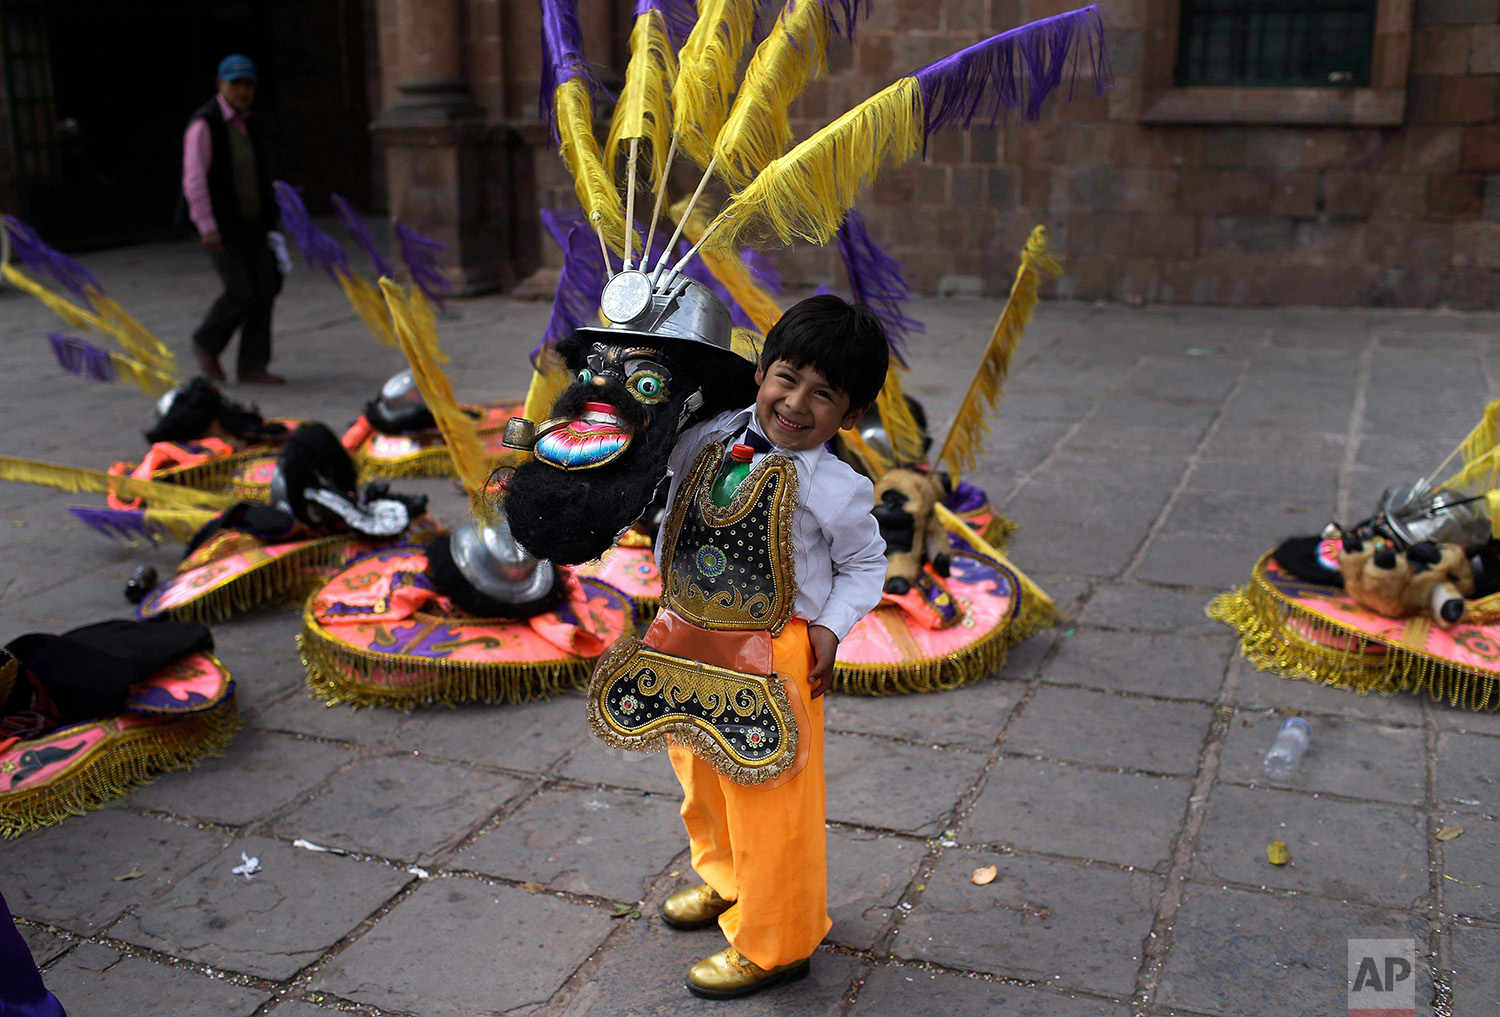 """Eight-year-old Miguel smiles while posing in his """"rey moreno"""" or """"black king"""" dance costume before the start of a procession honoring Our Lady of Copacabana, in Cuzco, Peru, Aug. 5, 2018. (AP Photo/Martin Mejia)"""